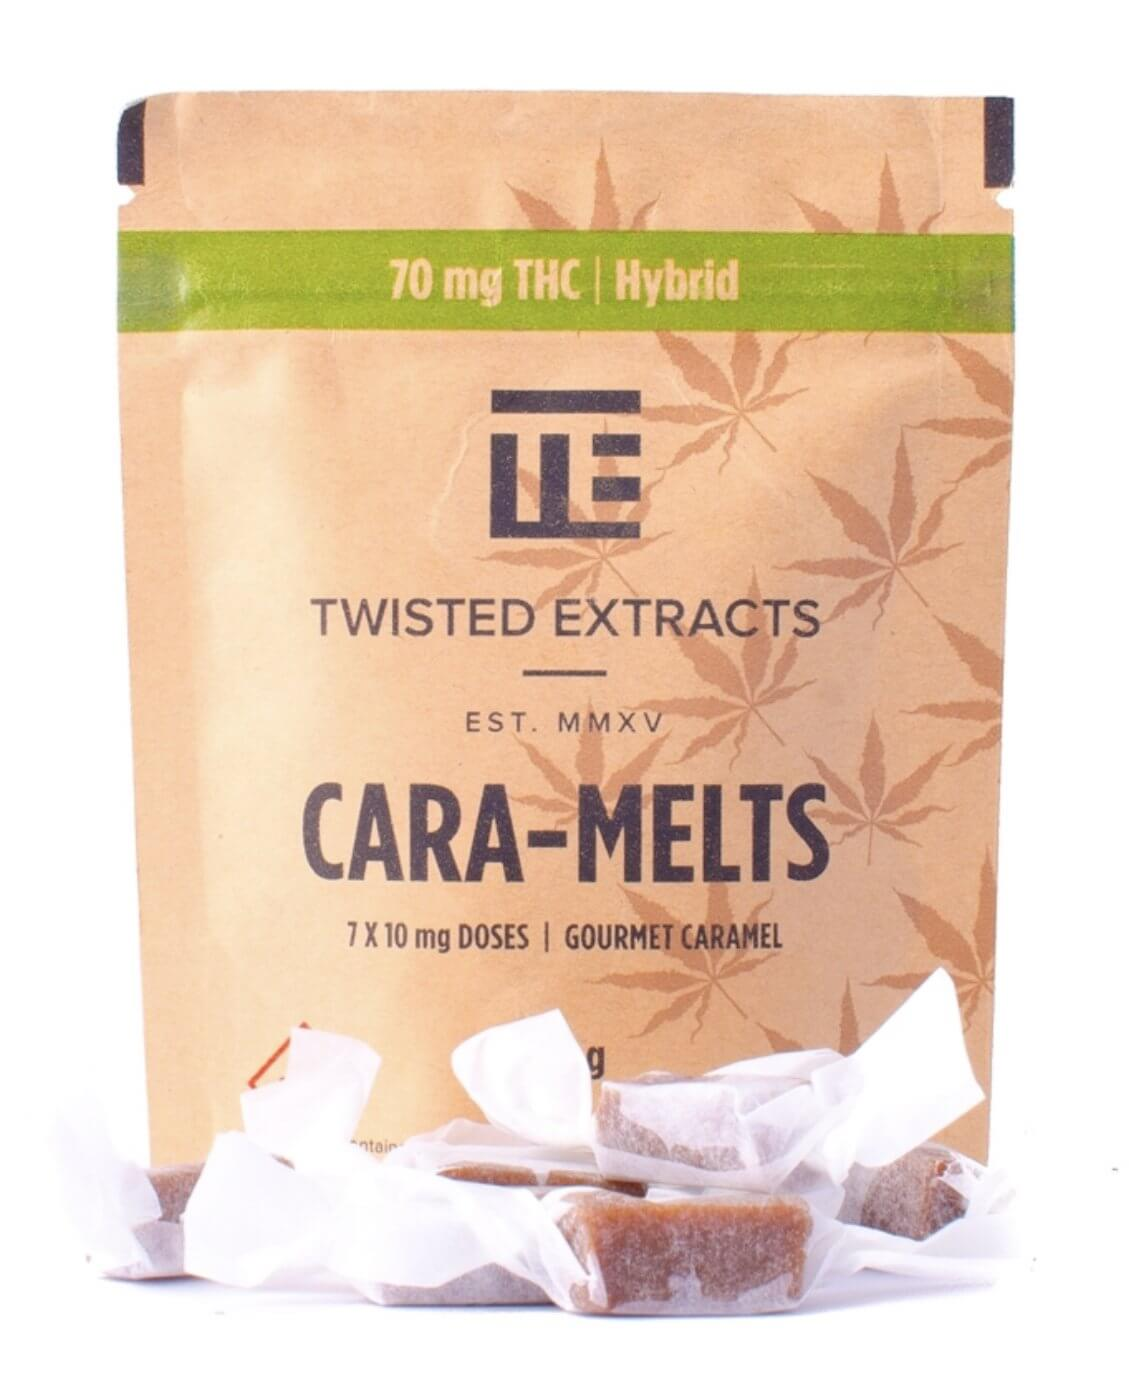 Twisted Extracts Caramelts